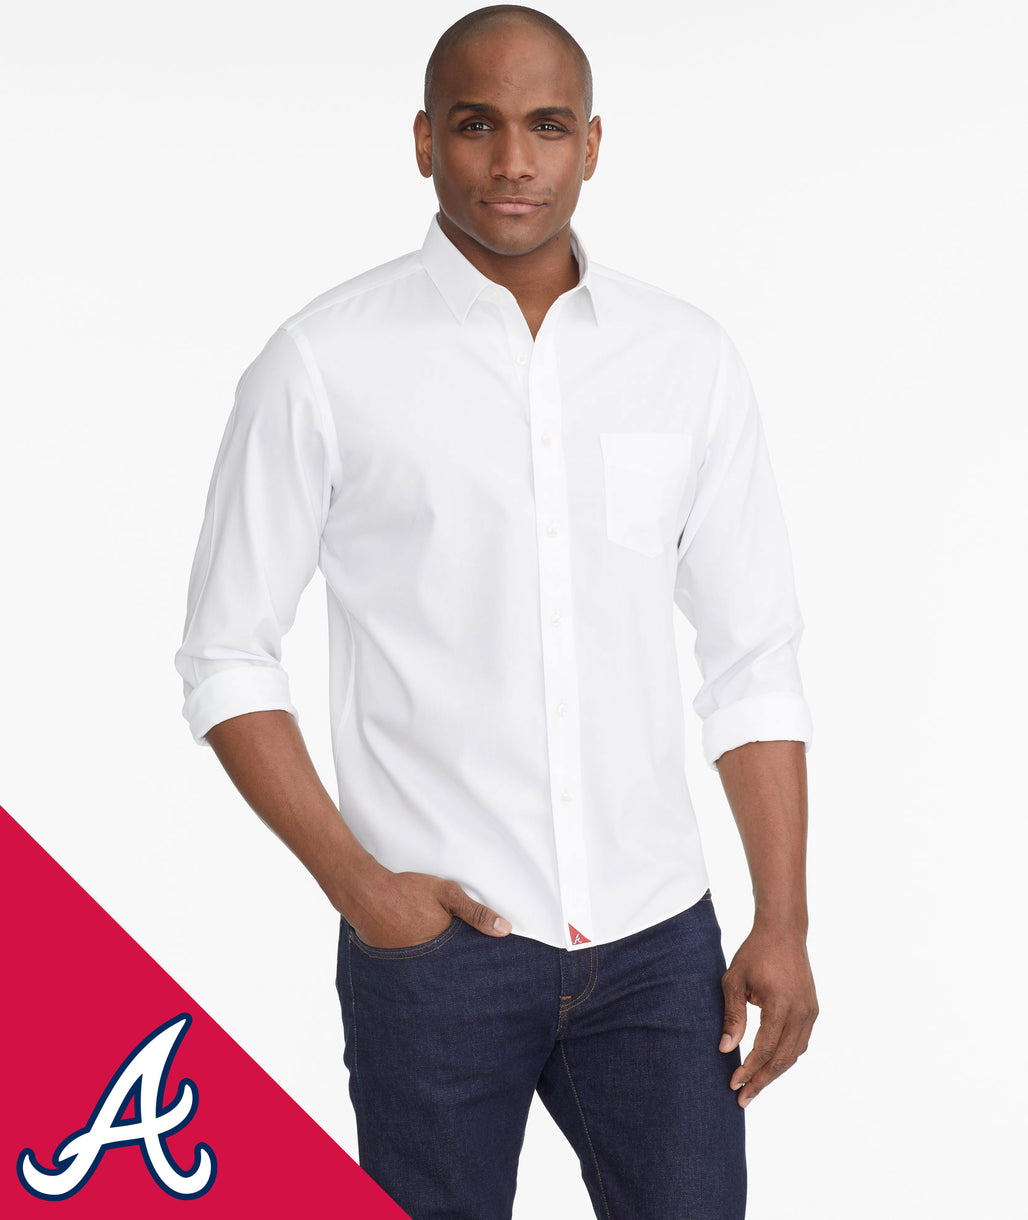 Model wearing a White Braves Signature Series Button-Down